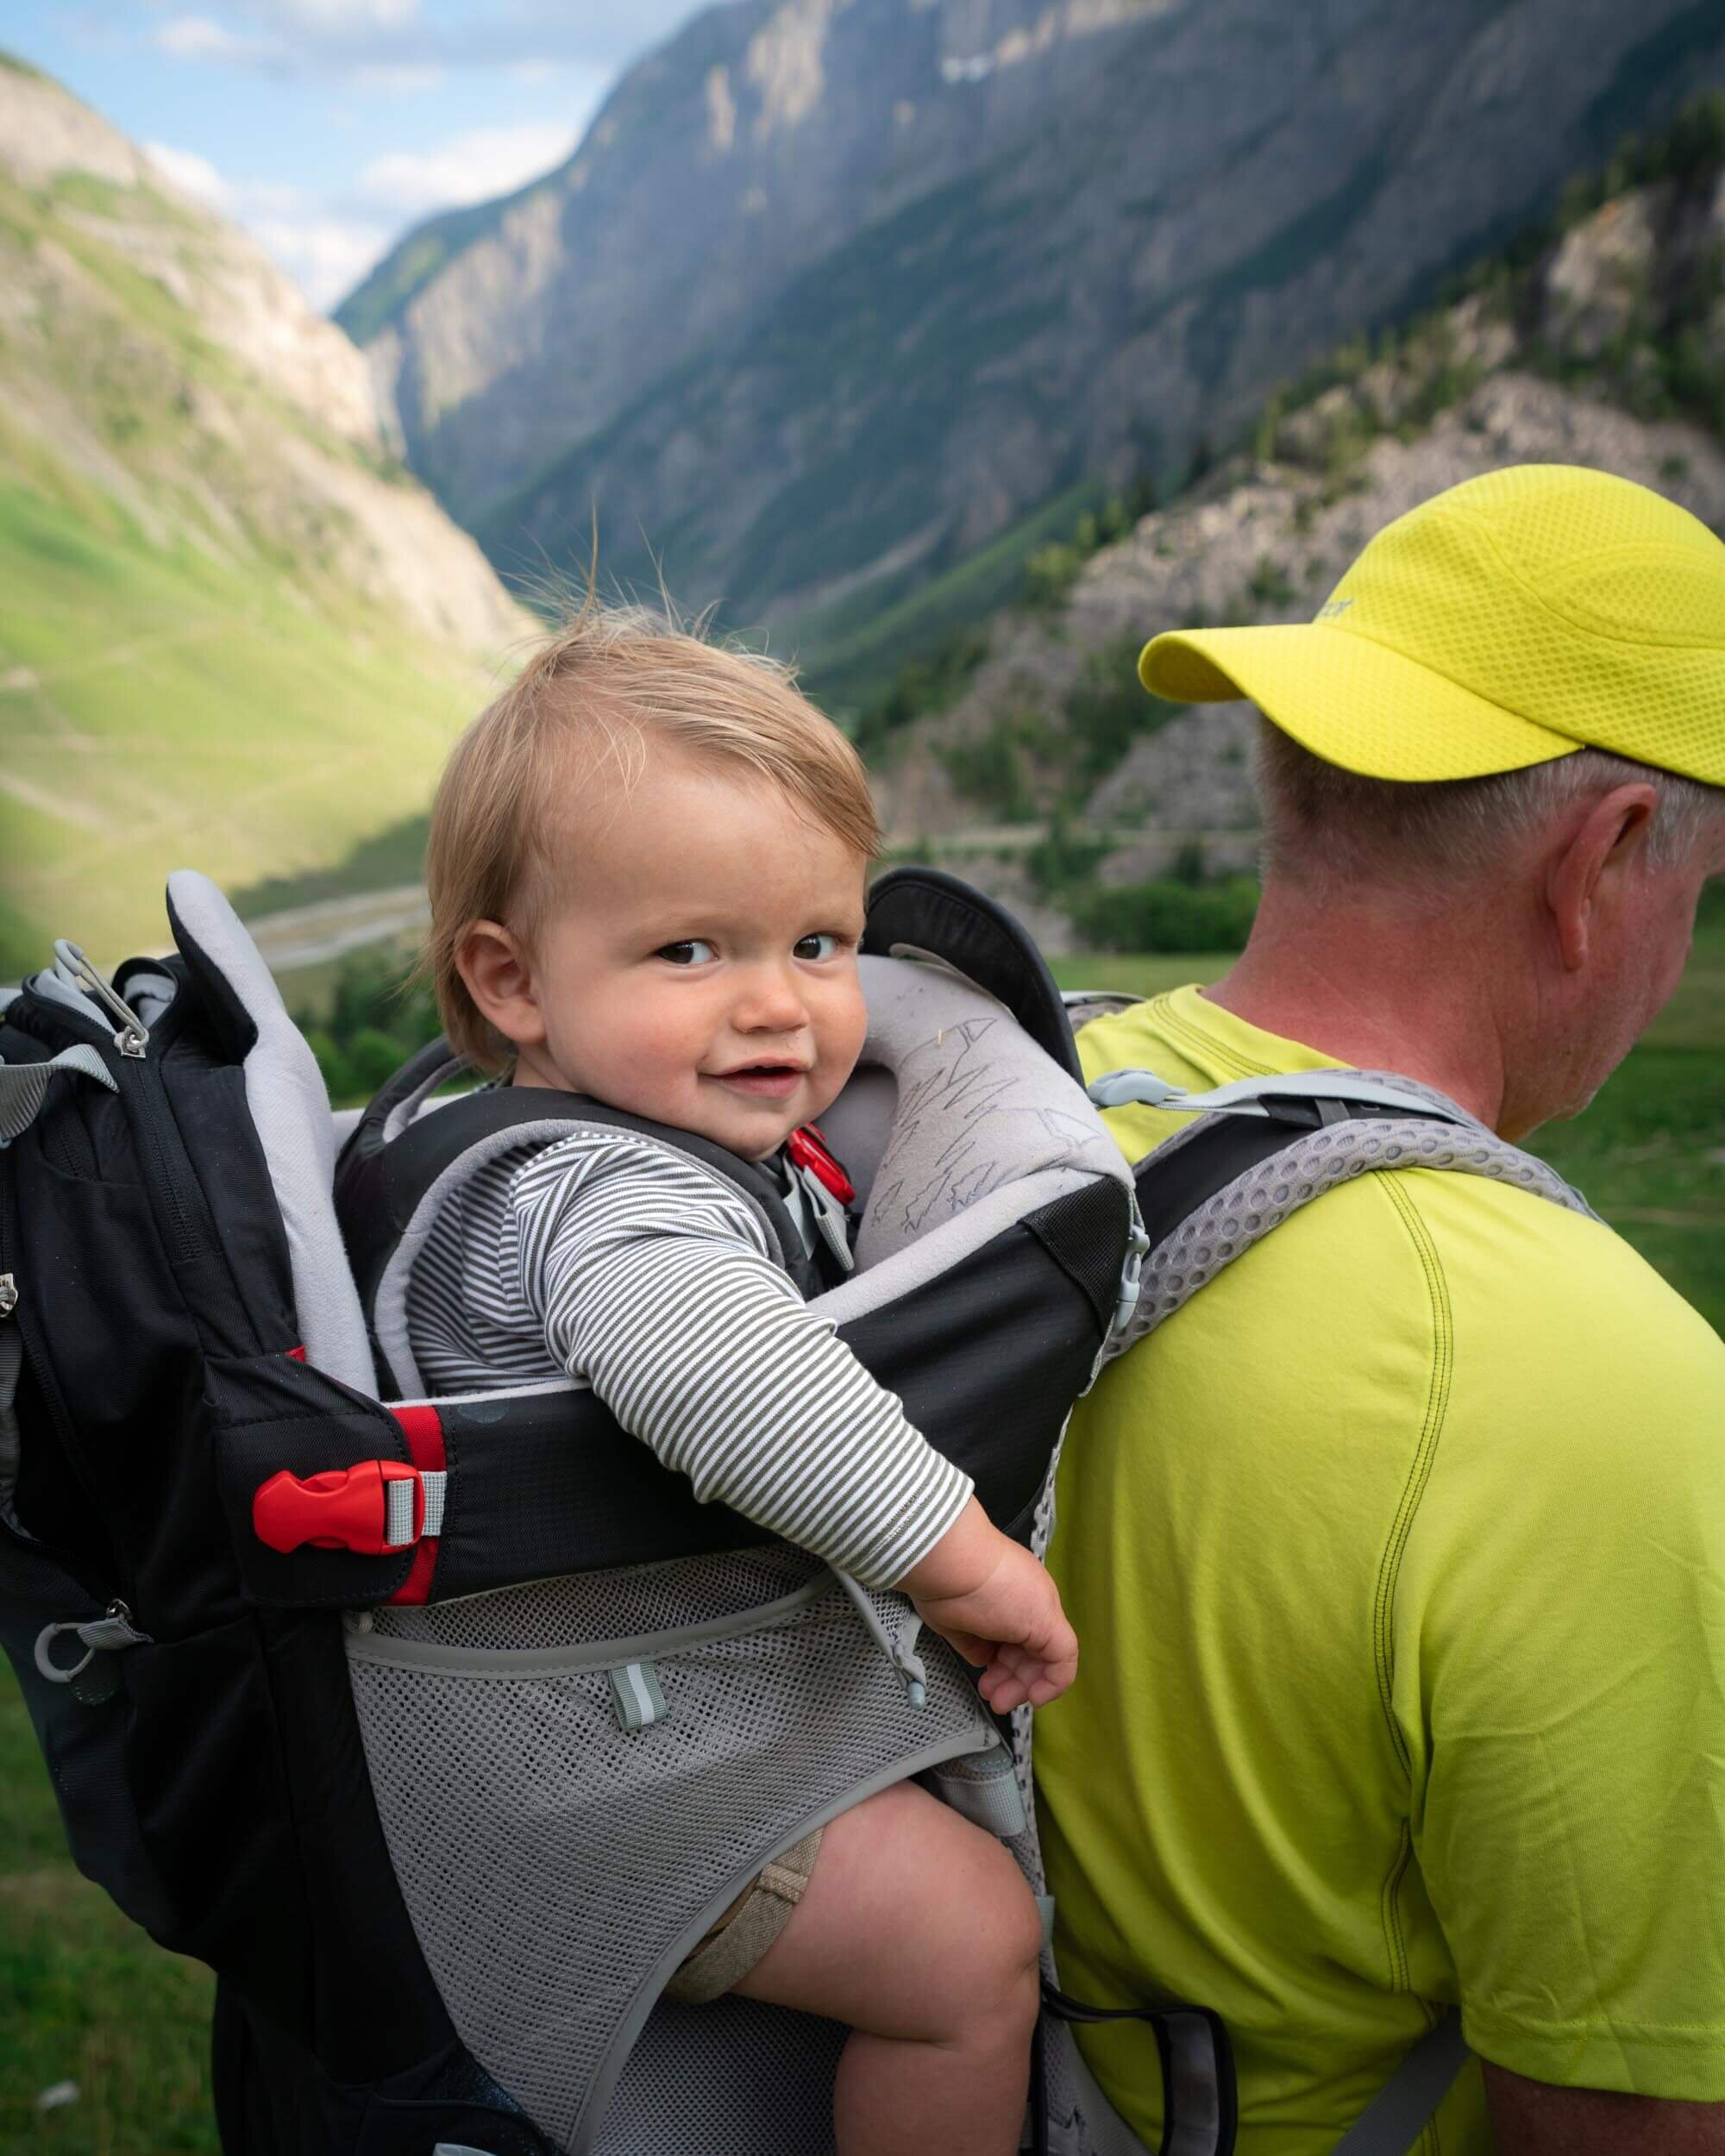 My nephew settling into trail life!